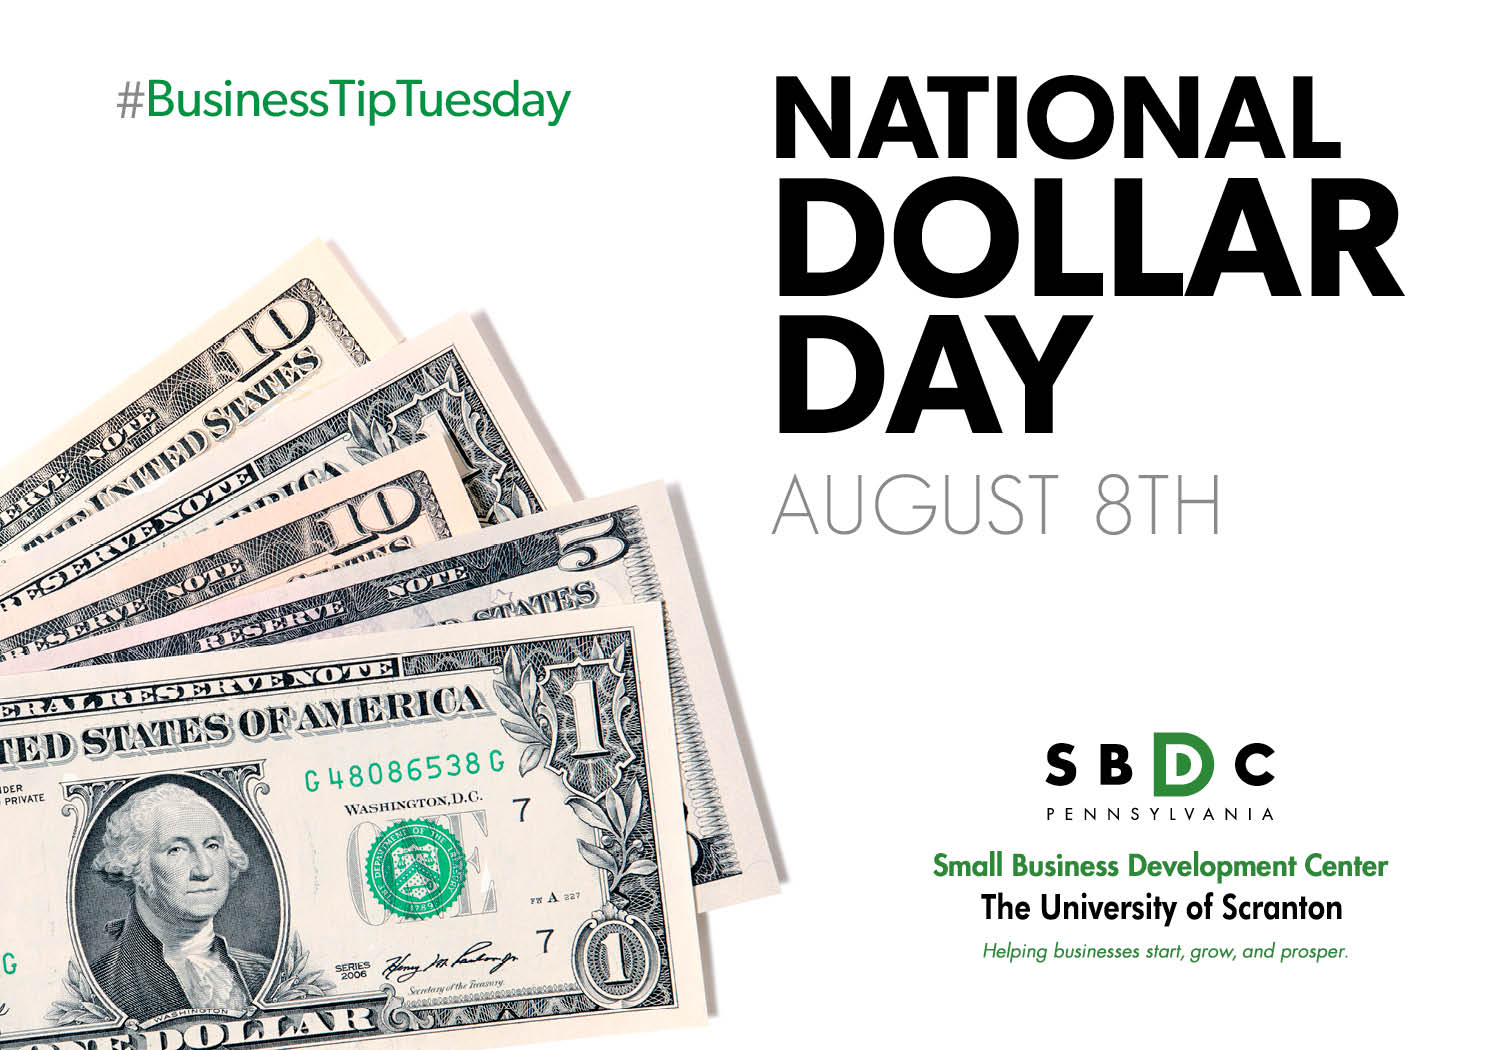 #BusinessTipTuesday – National Dollar Day